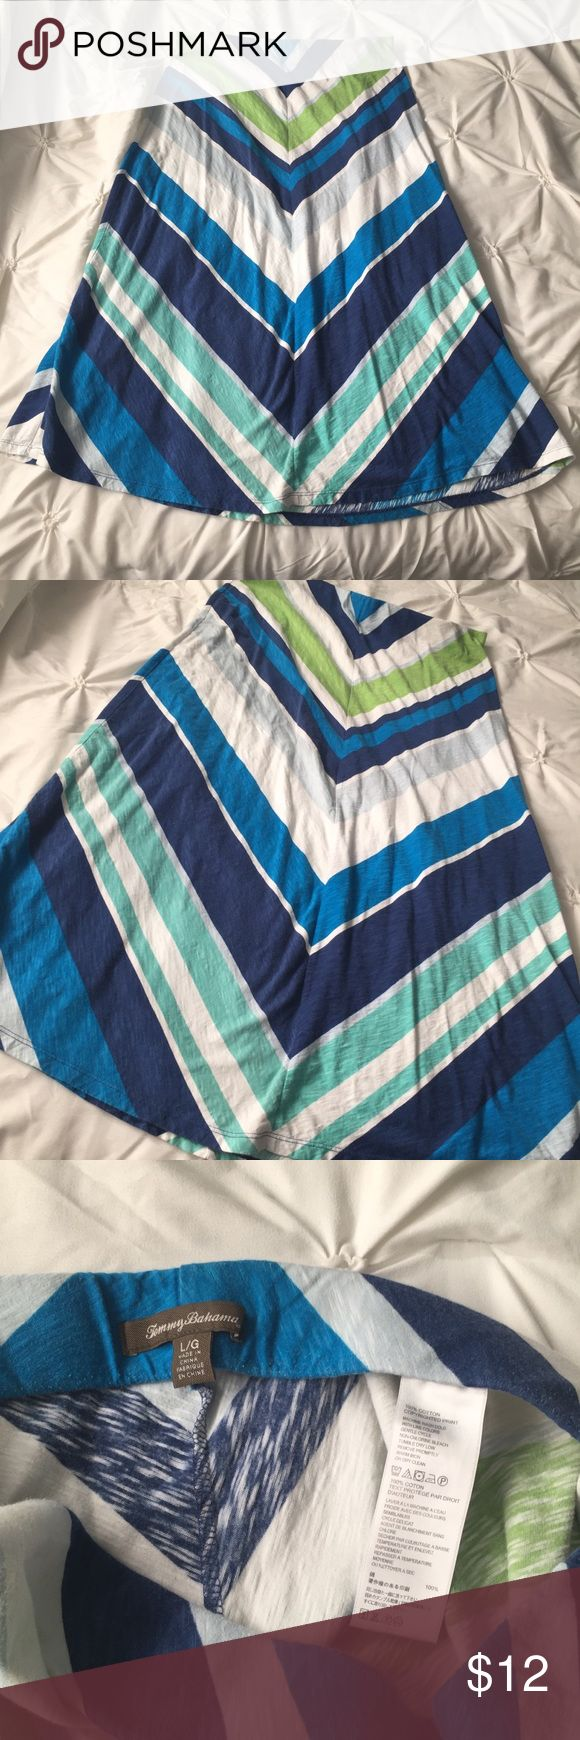 """Tommy Bahama Green, Blue, White Chevron Maxi Skirt Tommy Bahama Green, Blue, White Chevron Maxi Skirt size Large - measures 37.5"""" long top to bottom, elastic waistband, small hole on bottom back as seen in last picture- hardly noticeable when wearing. Price reflects. ----- 🚭 All items are from a non-smoking home. 👆🏻Item is as described, feel free to ask questions. 📦 I am a fast shipper with excellent ratings. 👗I love bundles. Feel free to make an offer! 😍 Like this item? Check out the…"""